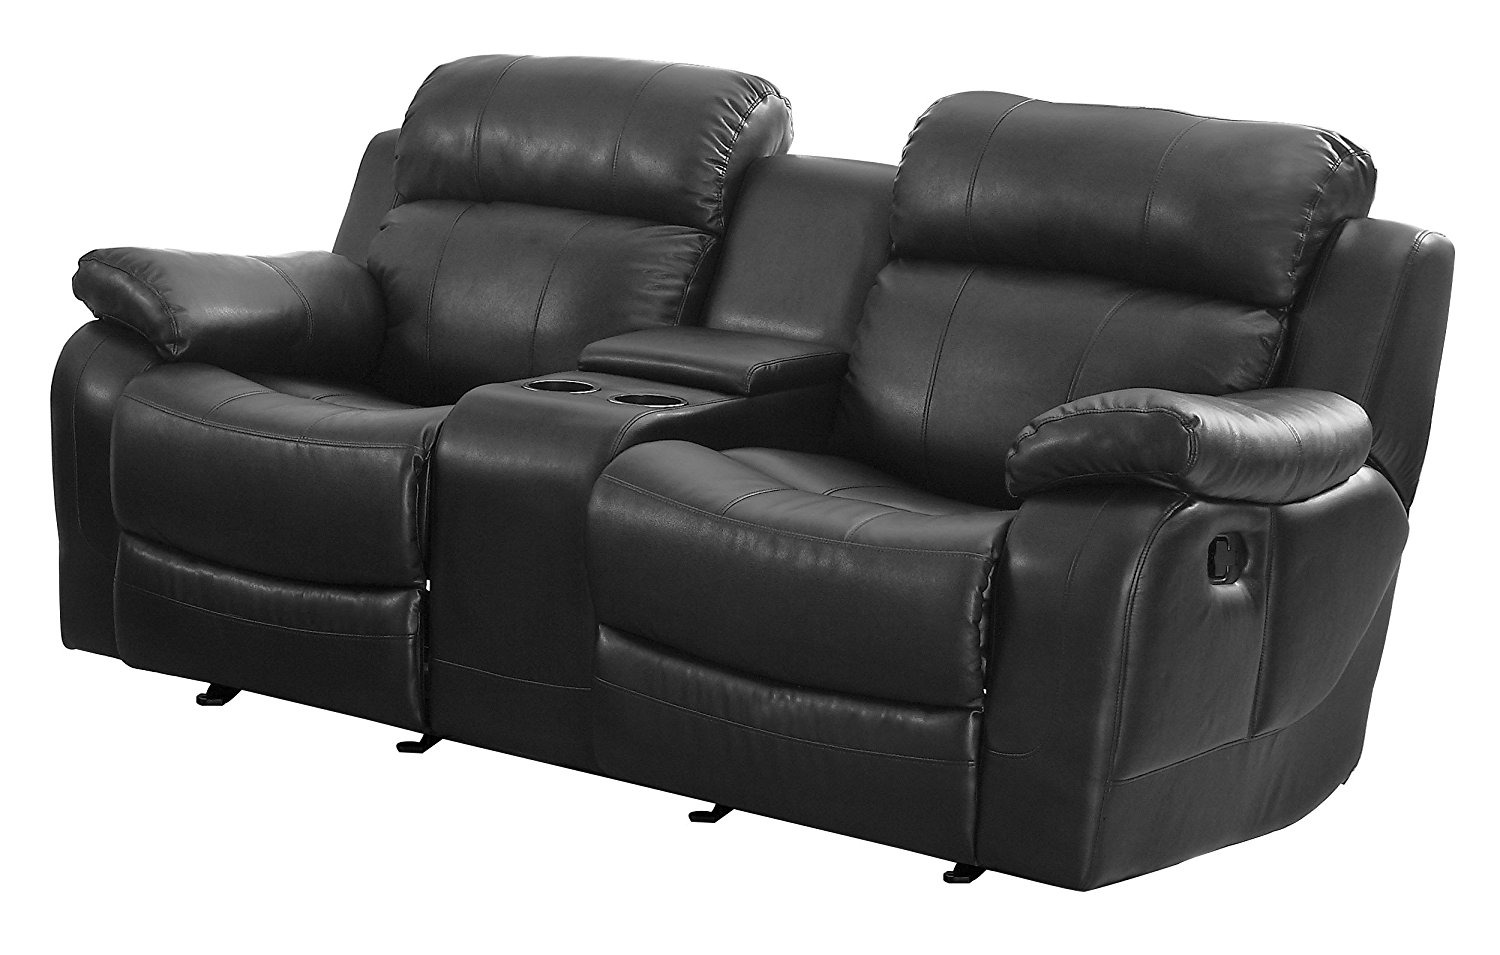 Luxury reclining leather loveseat amazon.com: homelegance marille reclining loveseat w/ center console cup  holder, black bonded czgvpxt